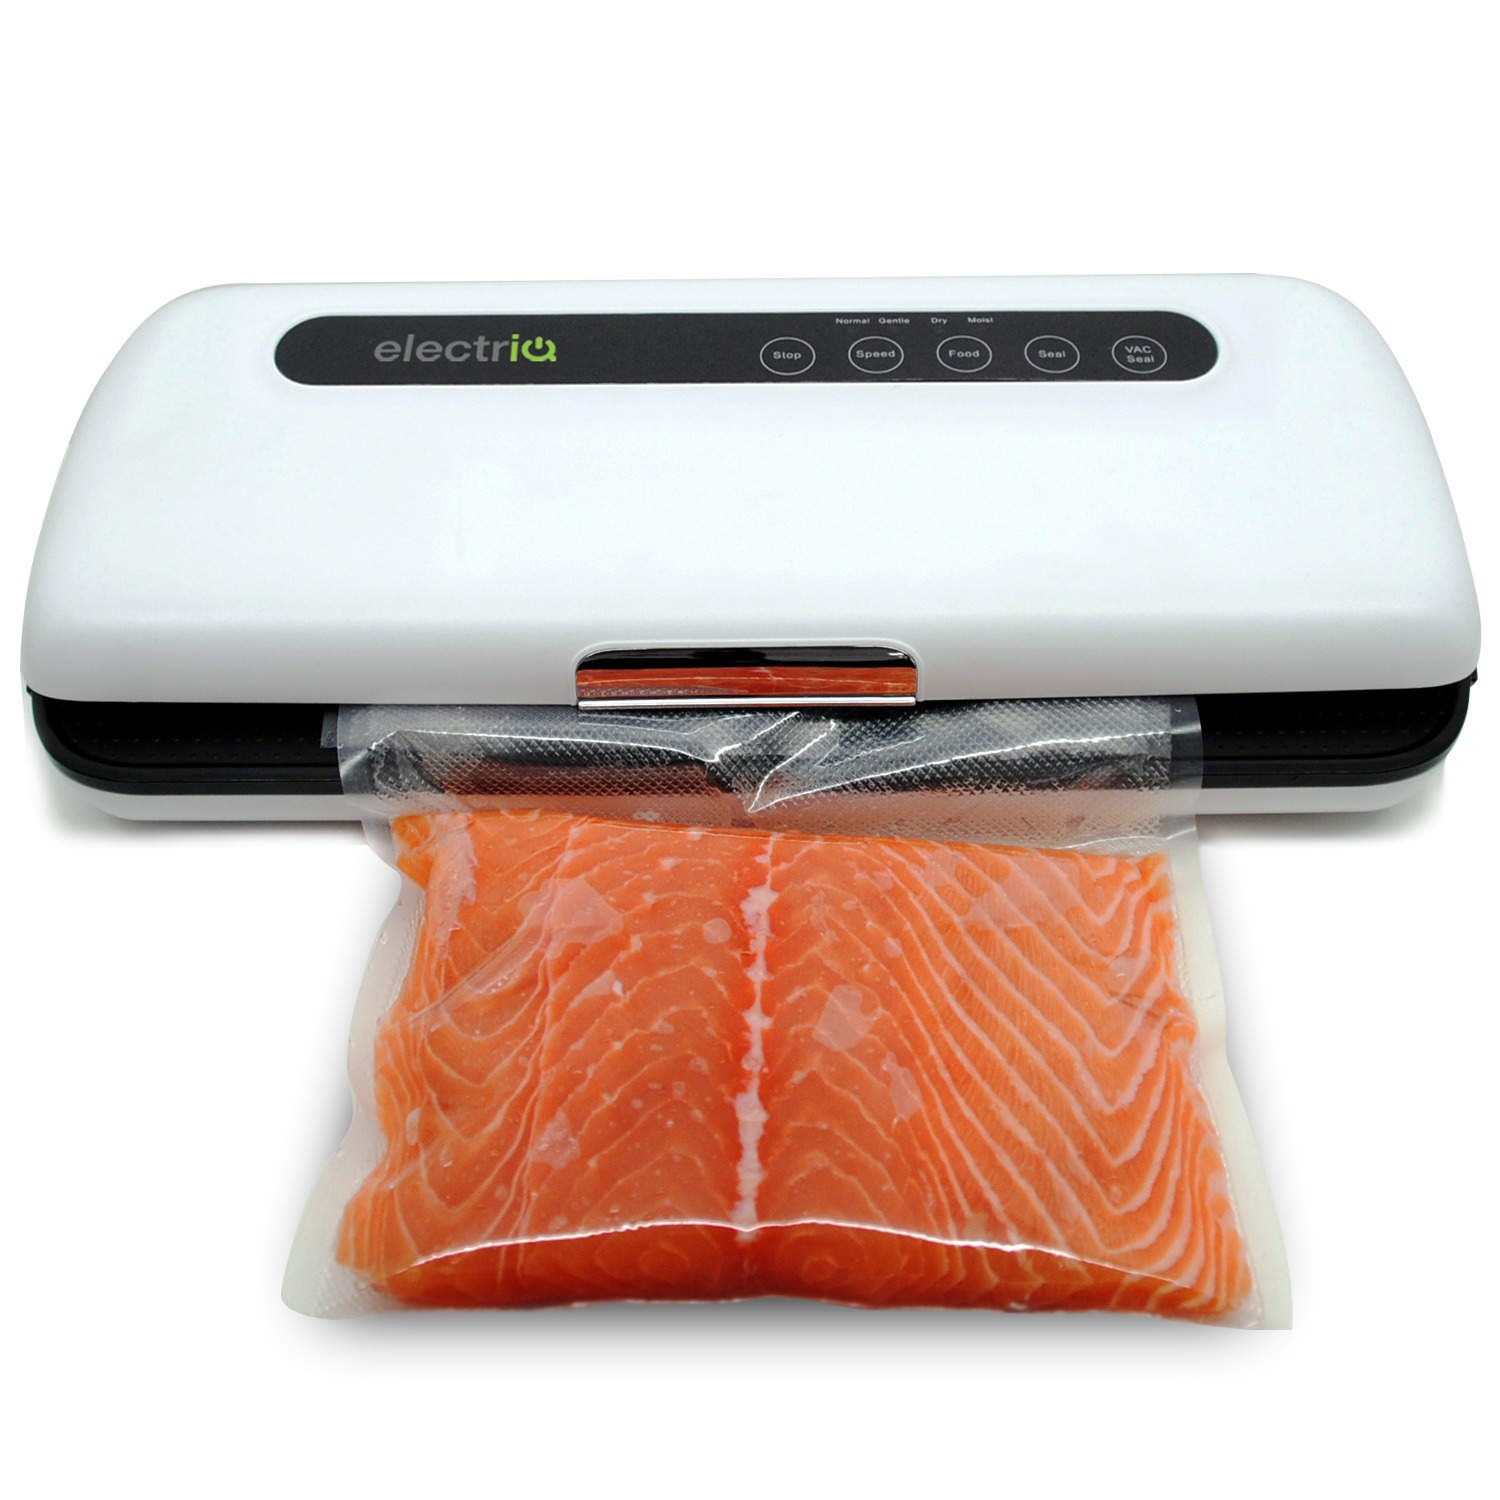 electriq food vacuum sealer keeps food fresh for longer now with gentle setting for